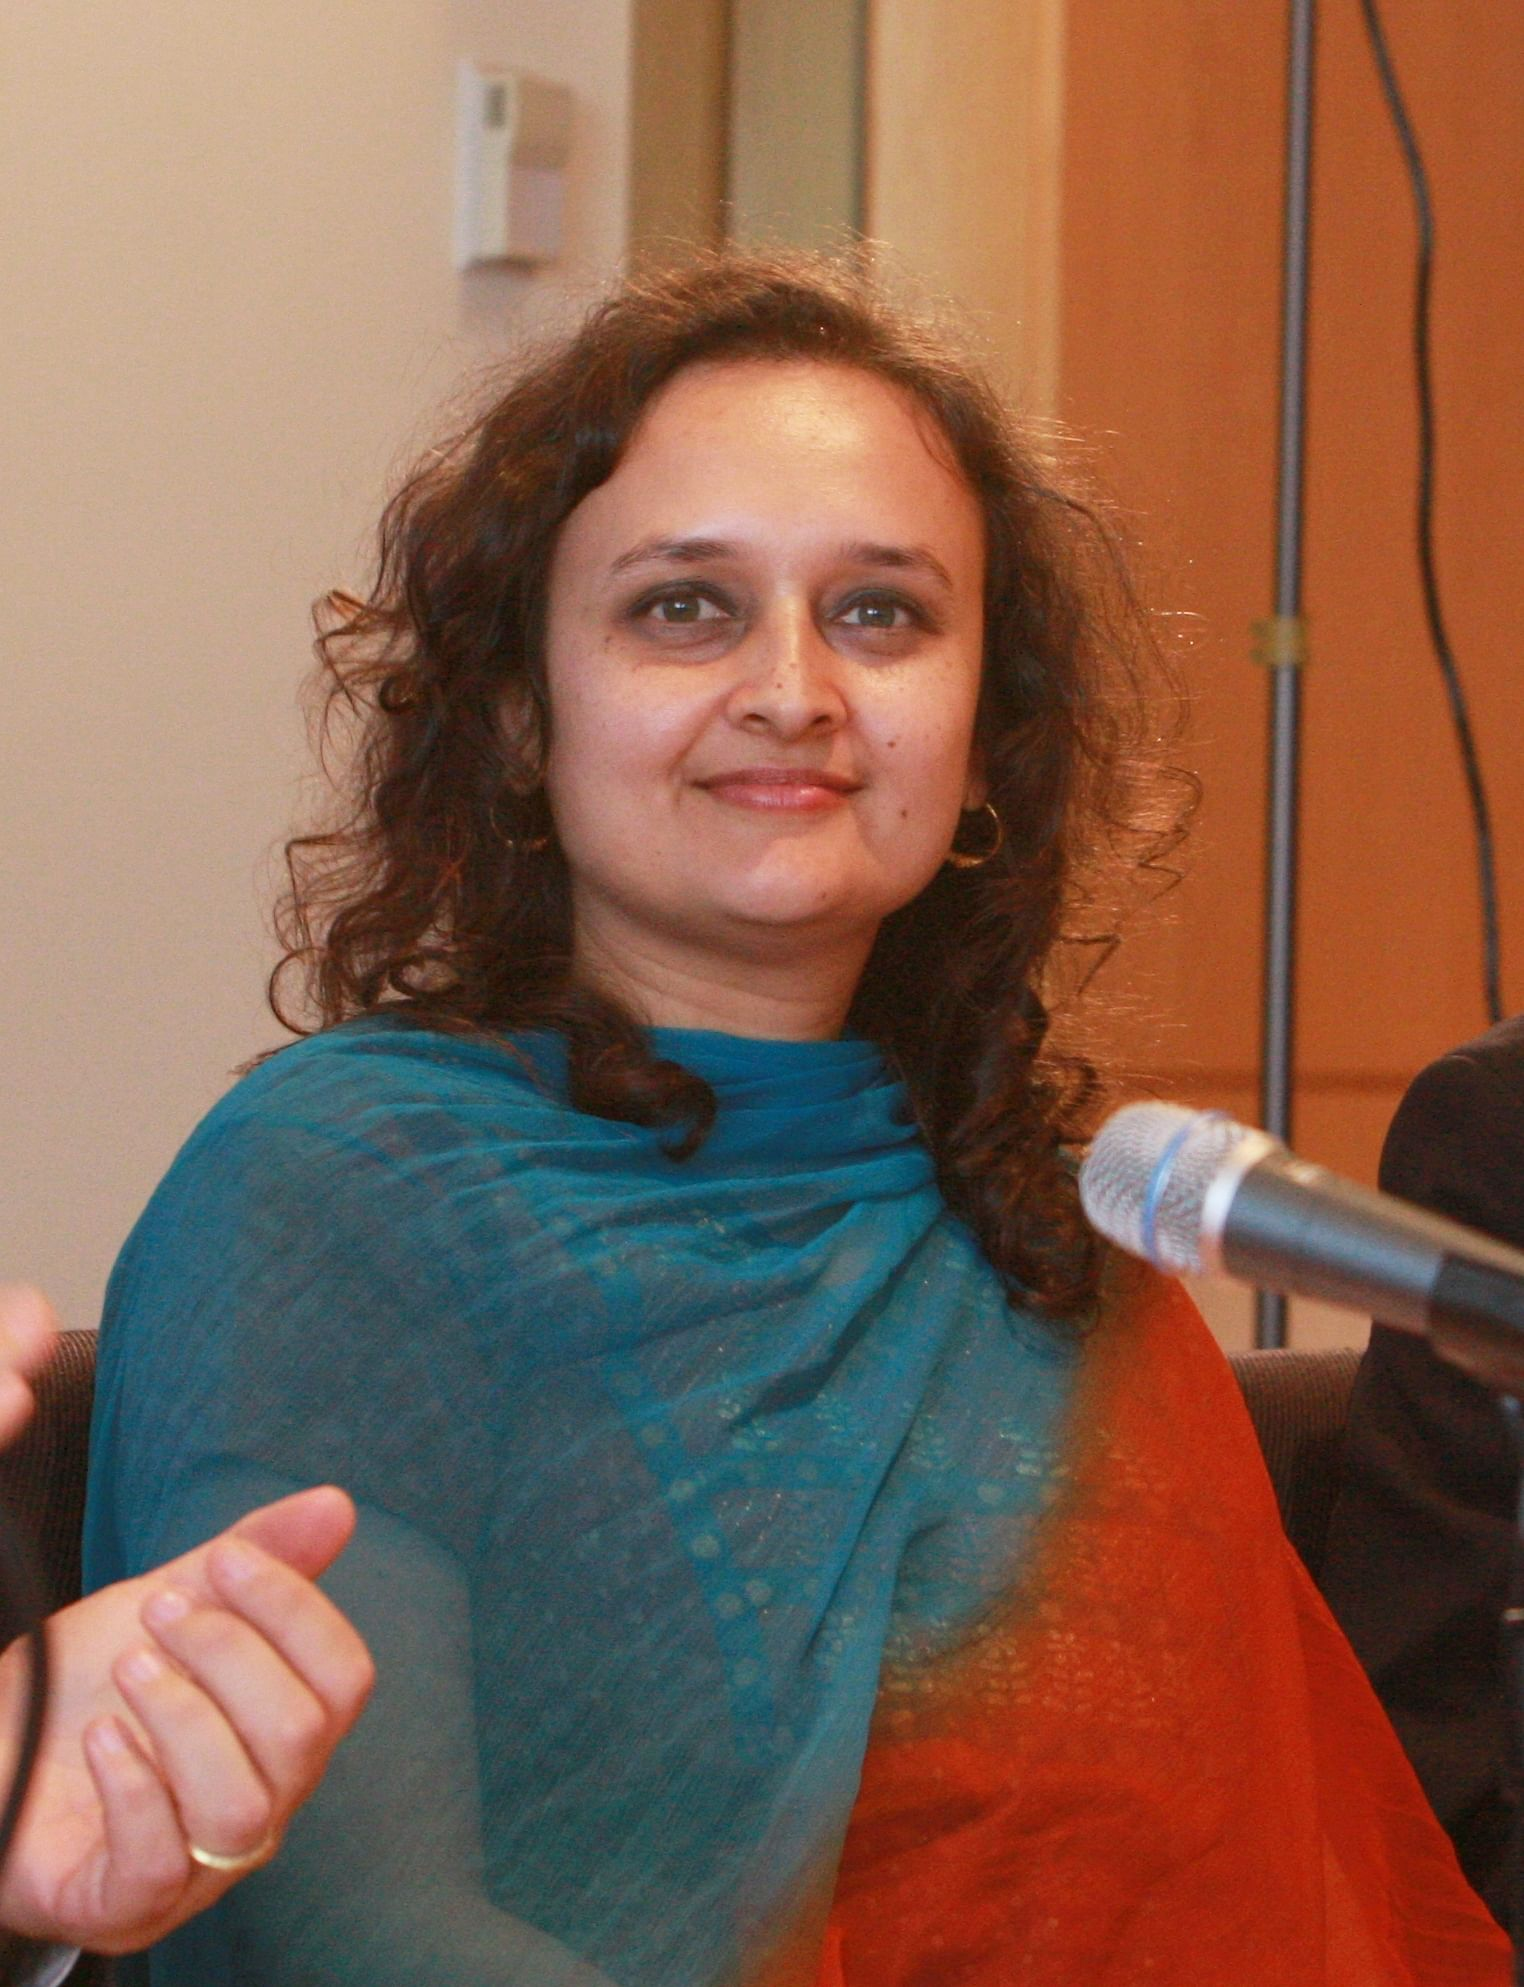 Bhairavi Desai Executive Director of the National Taxi Workers Alliance taken on October 20, 2011